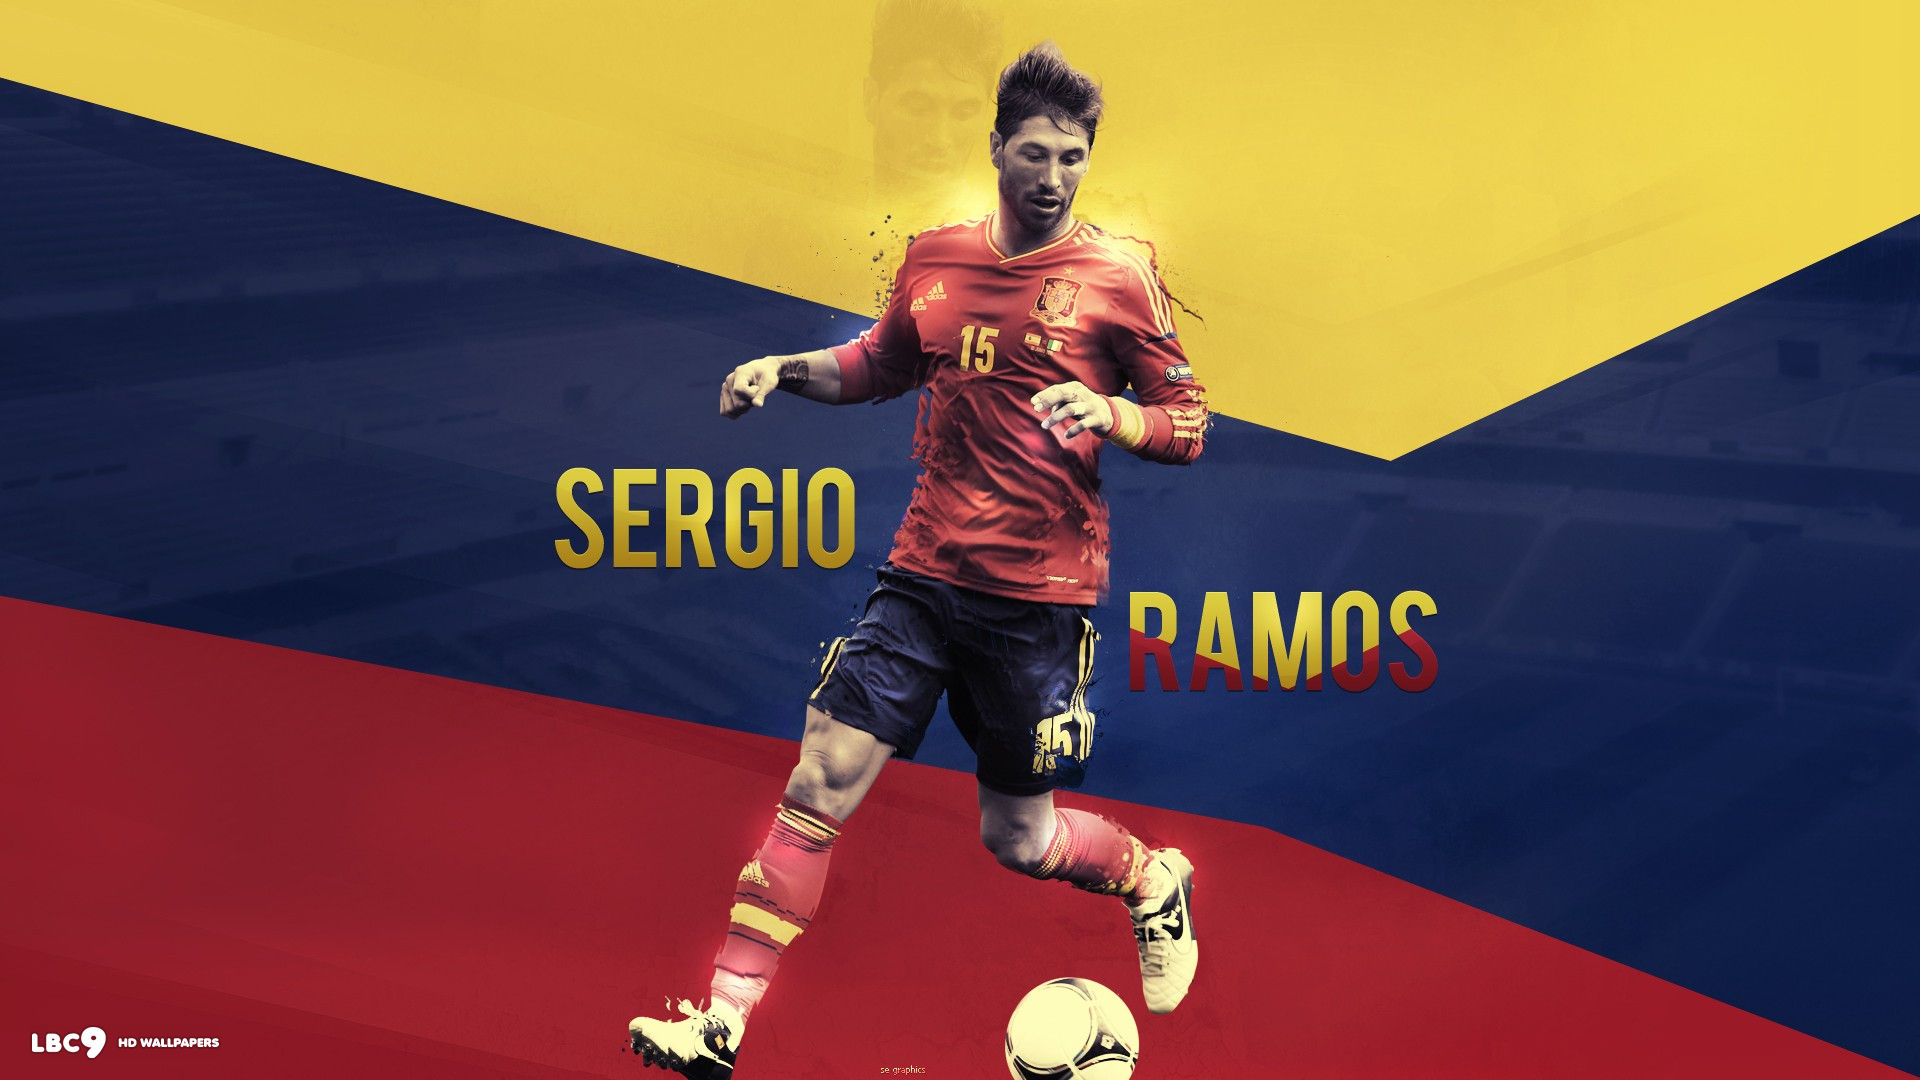 Sergio Ramos Wallpapers High Resolution And Quality Download